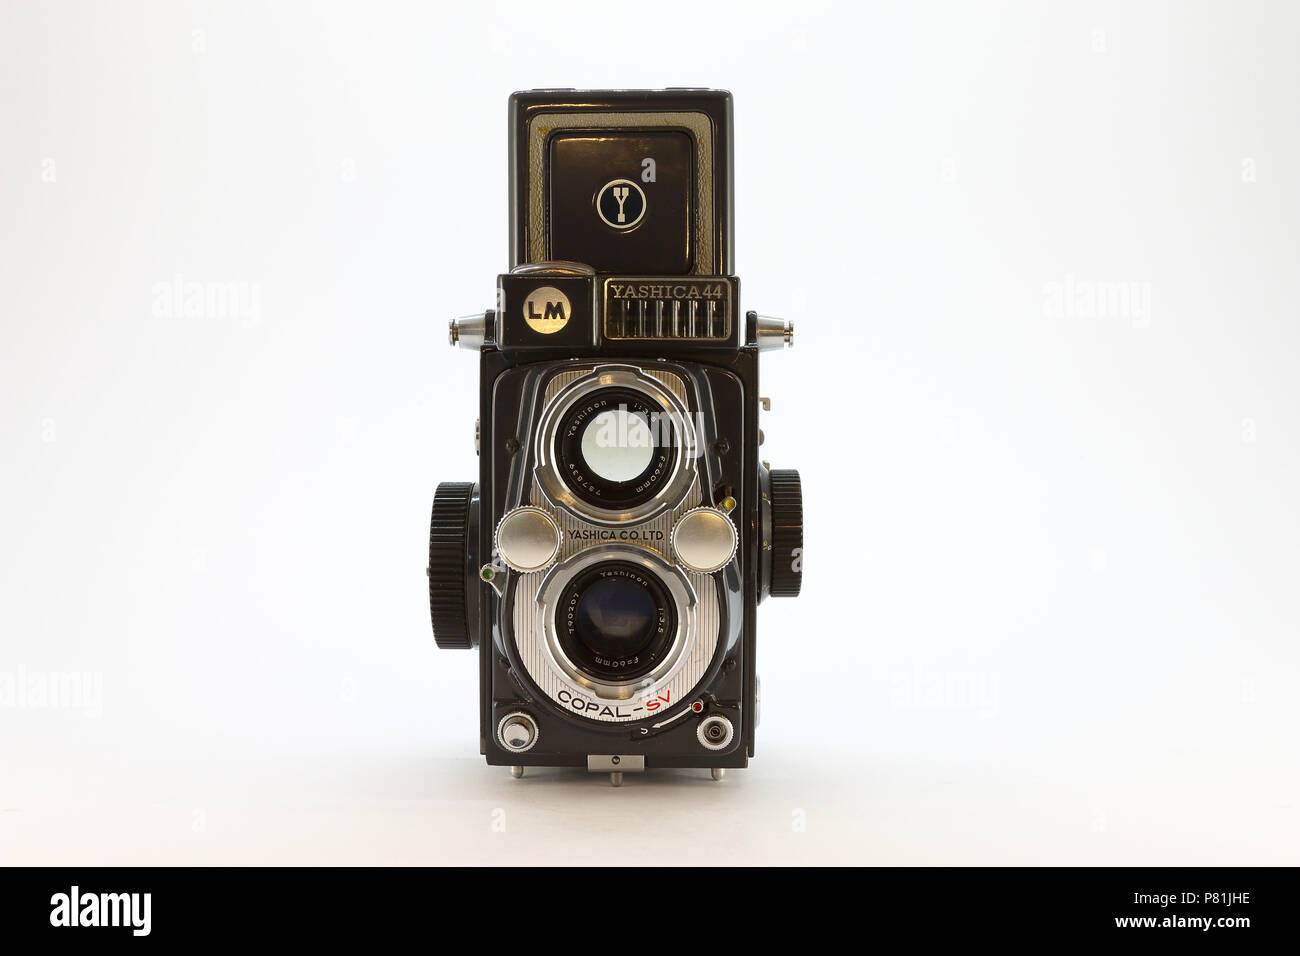 Yashica-44LM from the 1950's front view - Stock Image